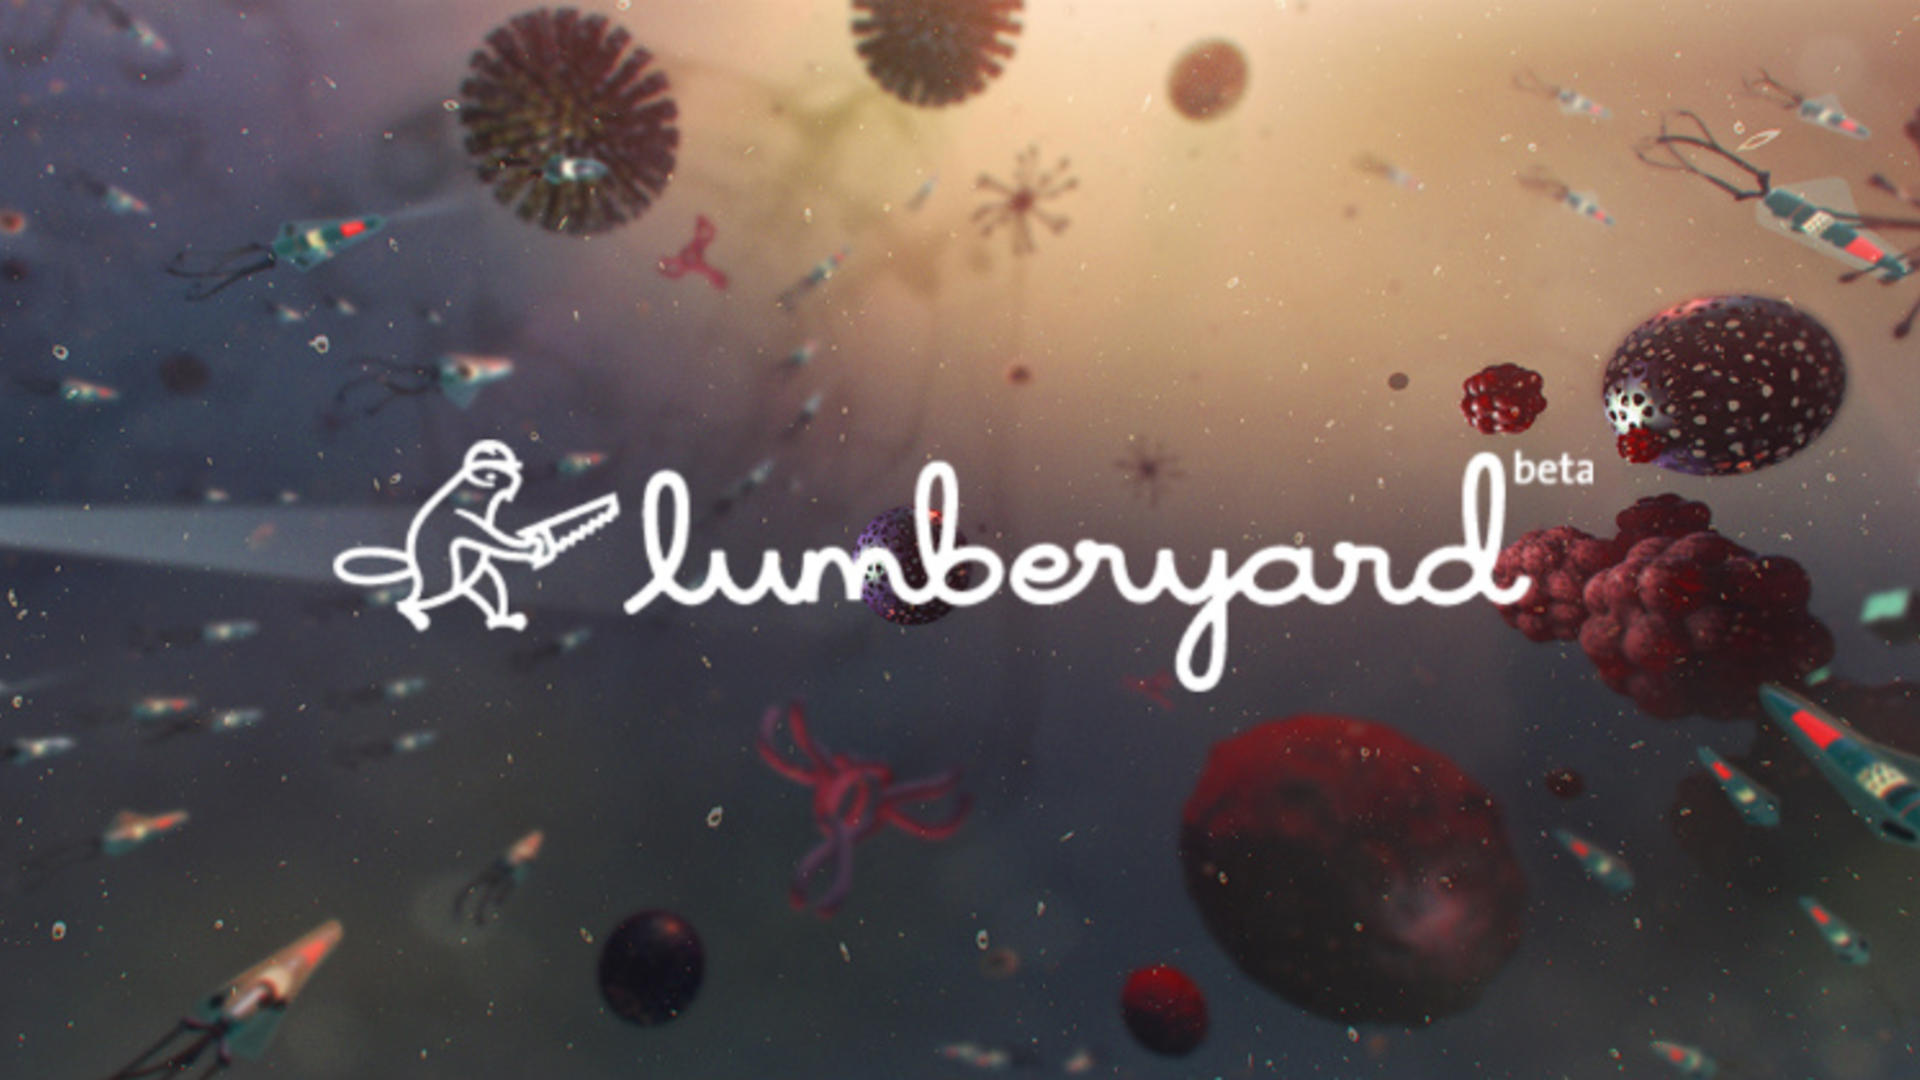 Intro to Lumberyard Engine by Dev.to